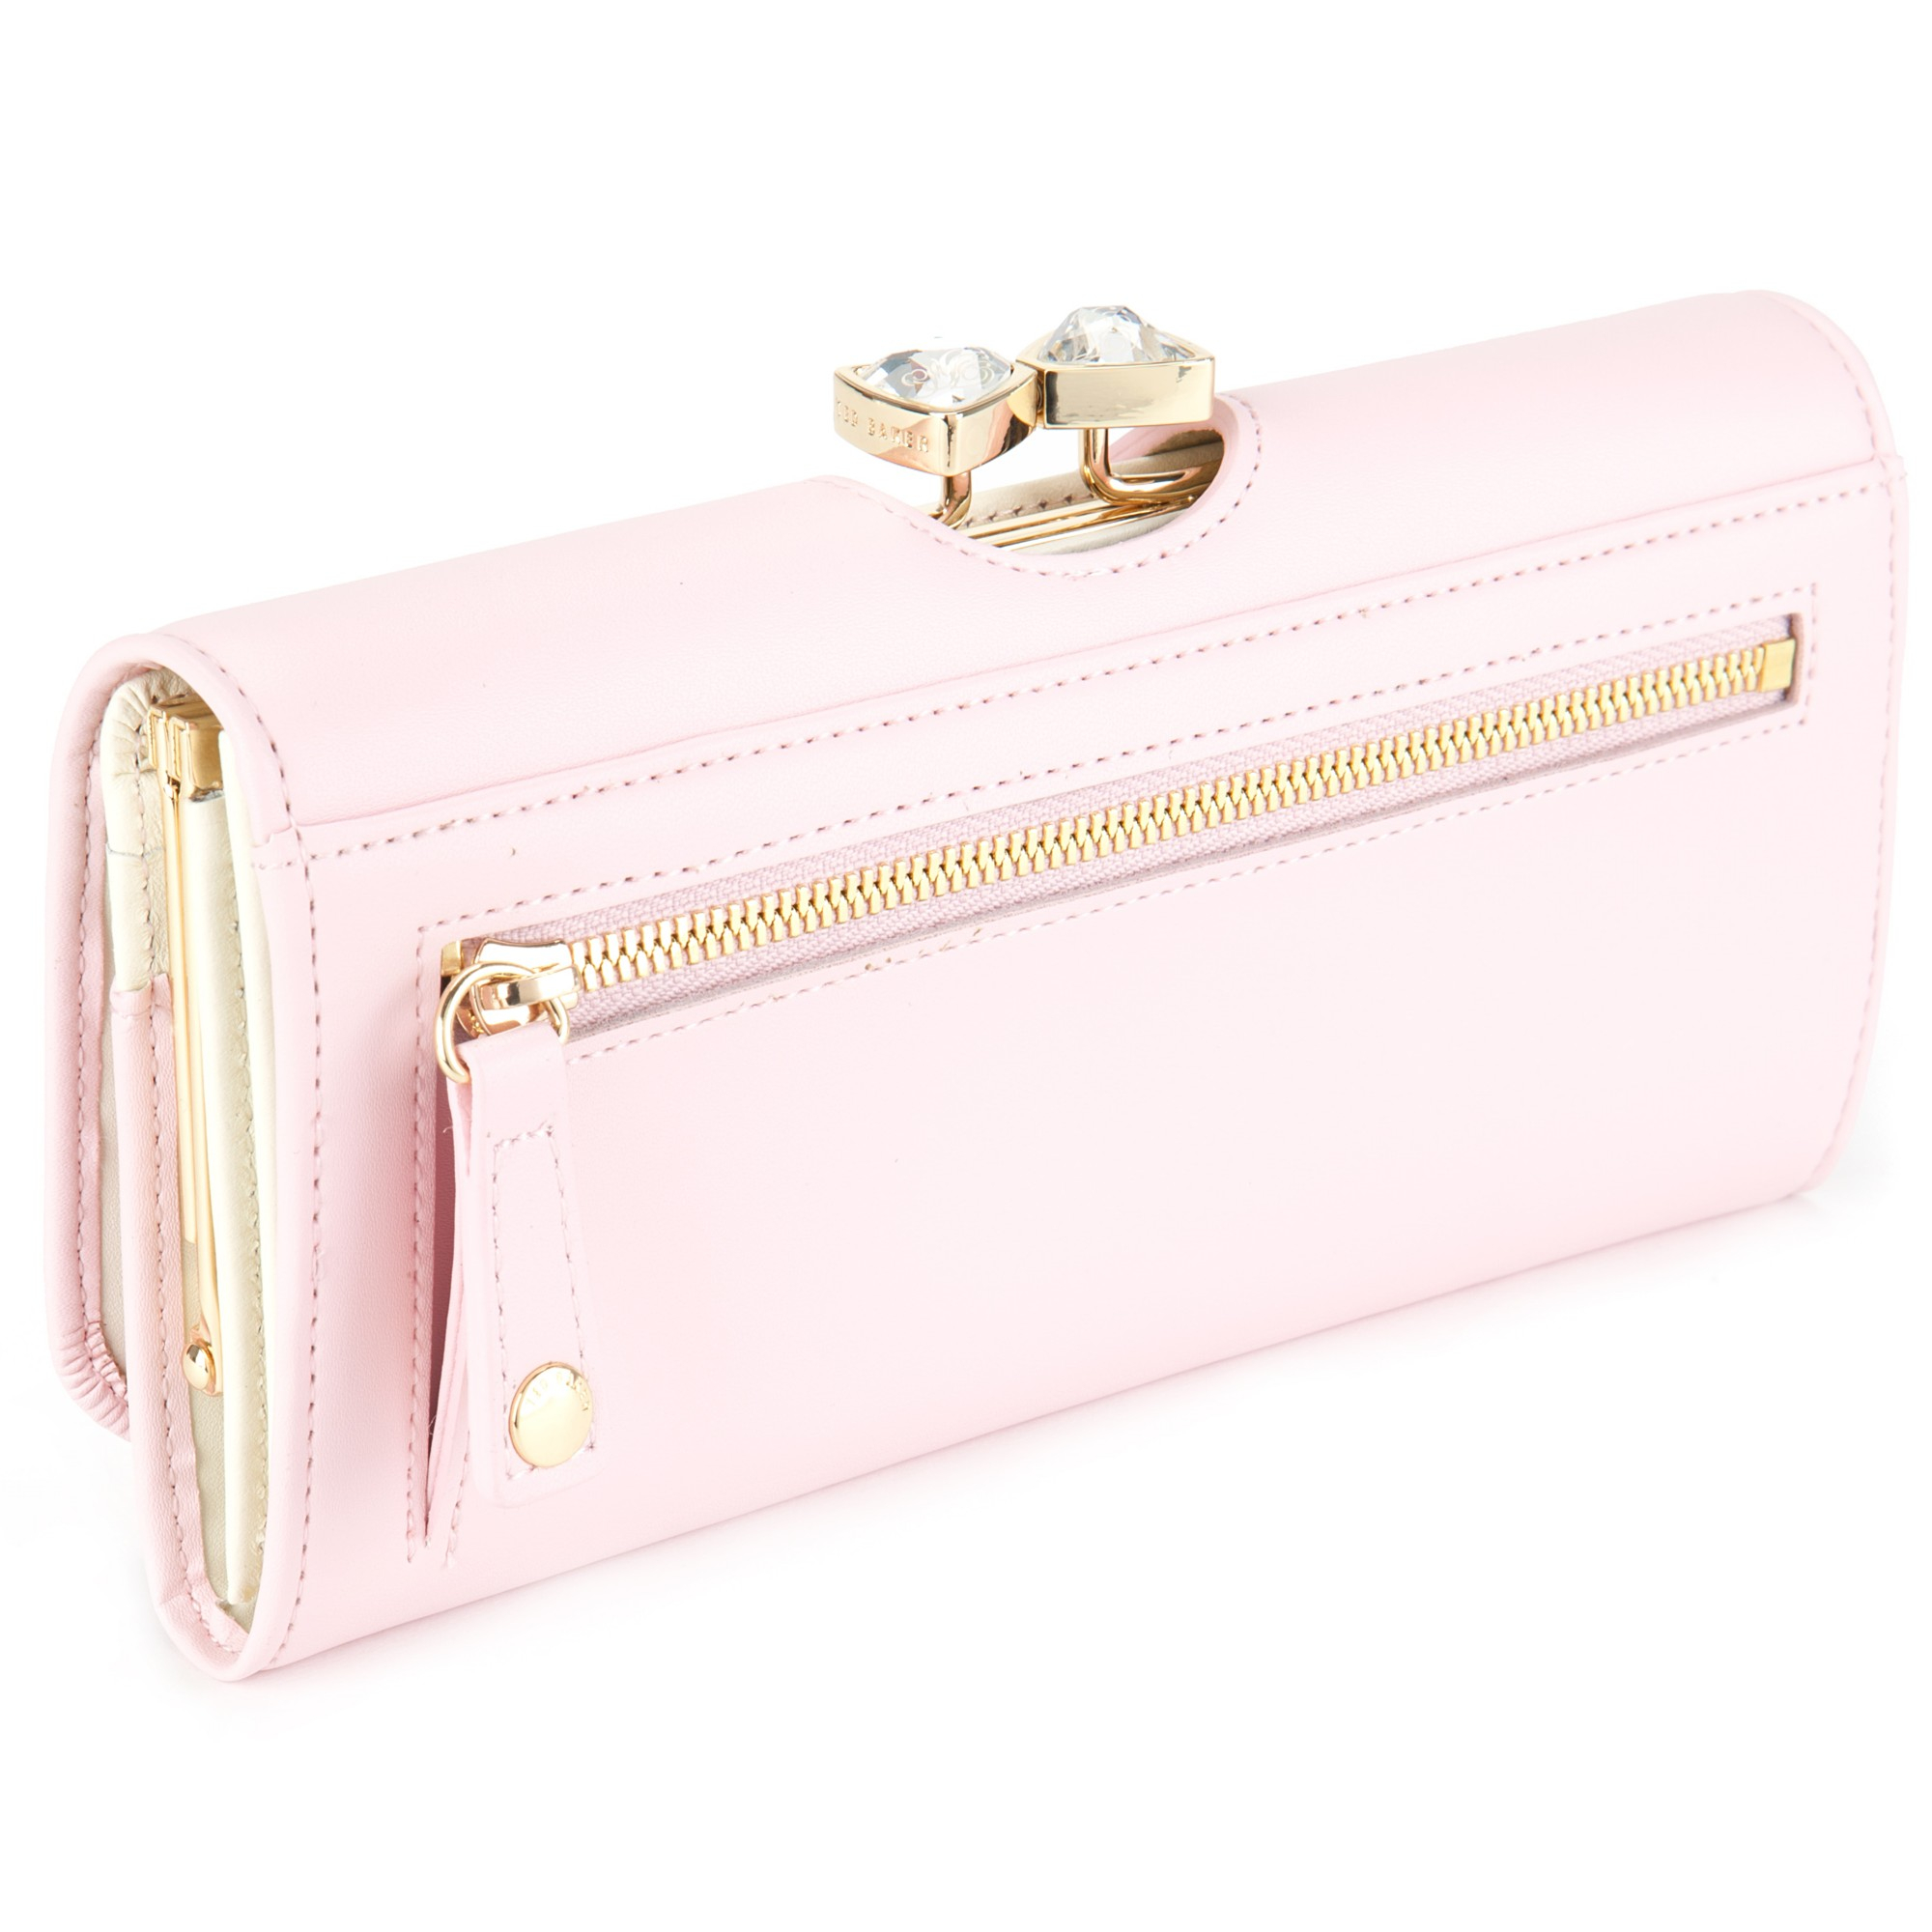 74c334880 Ted Baker Caleena Jewelled Bow Leather Matinee Purse in Pink - Lyst